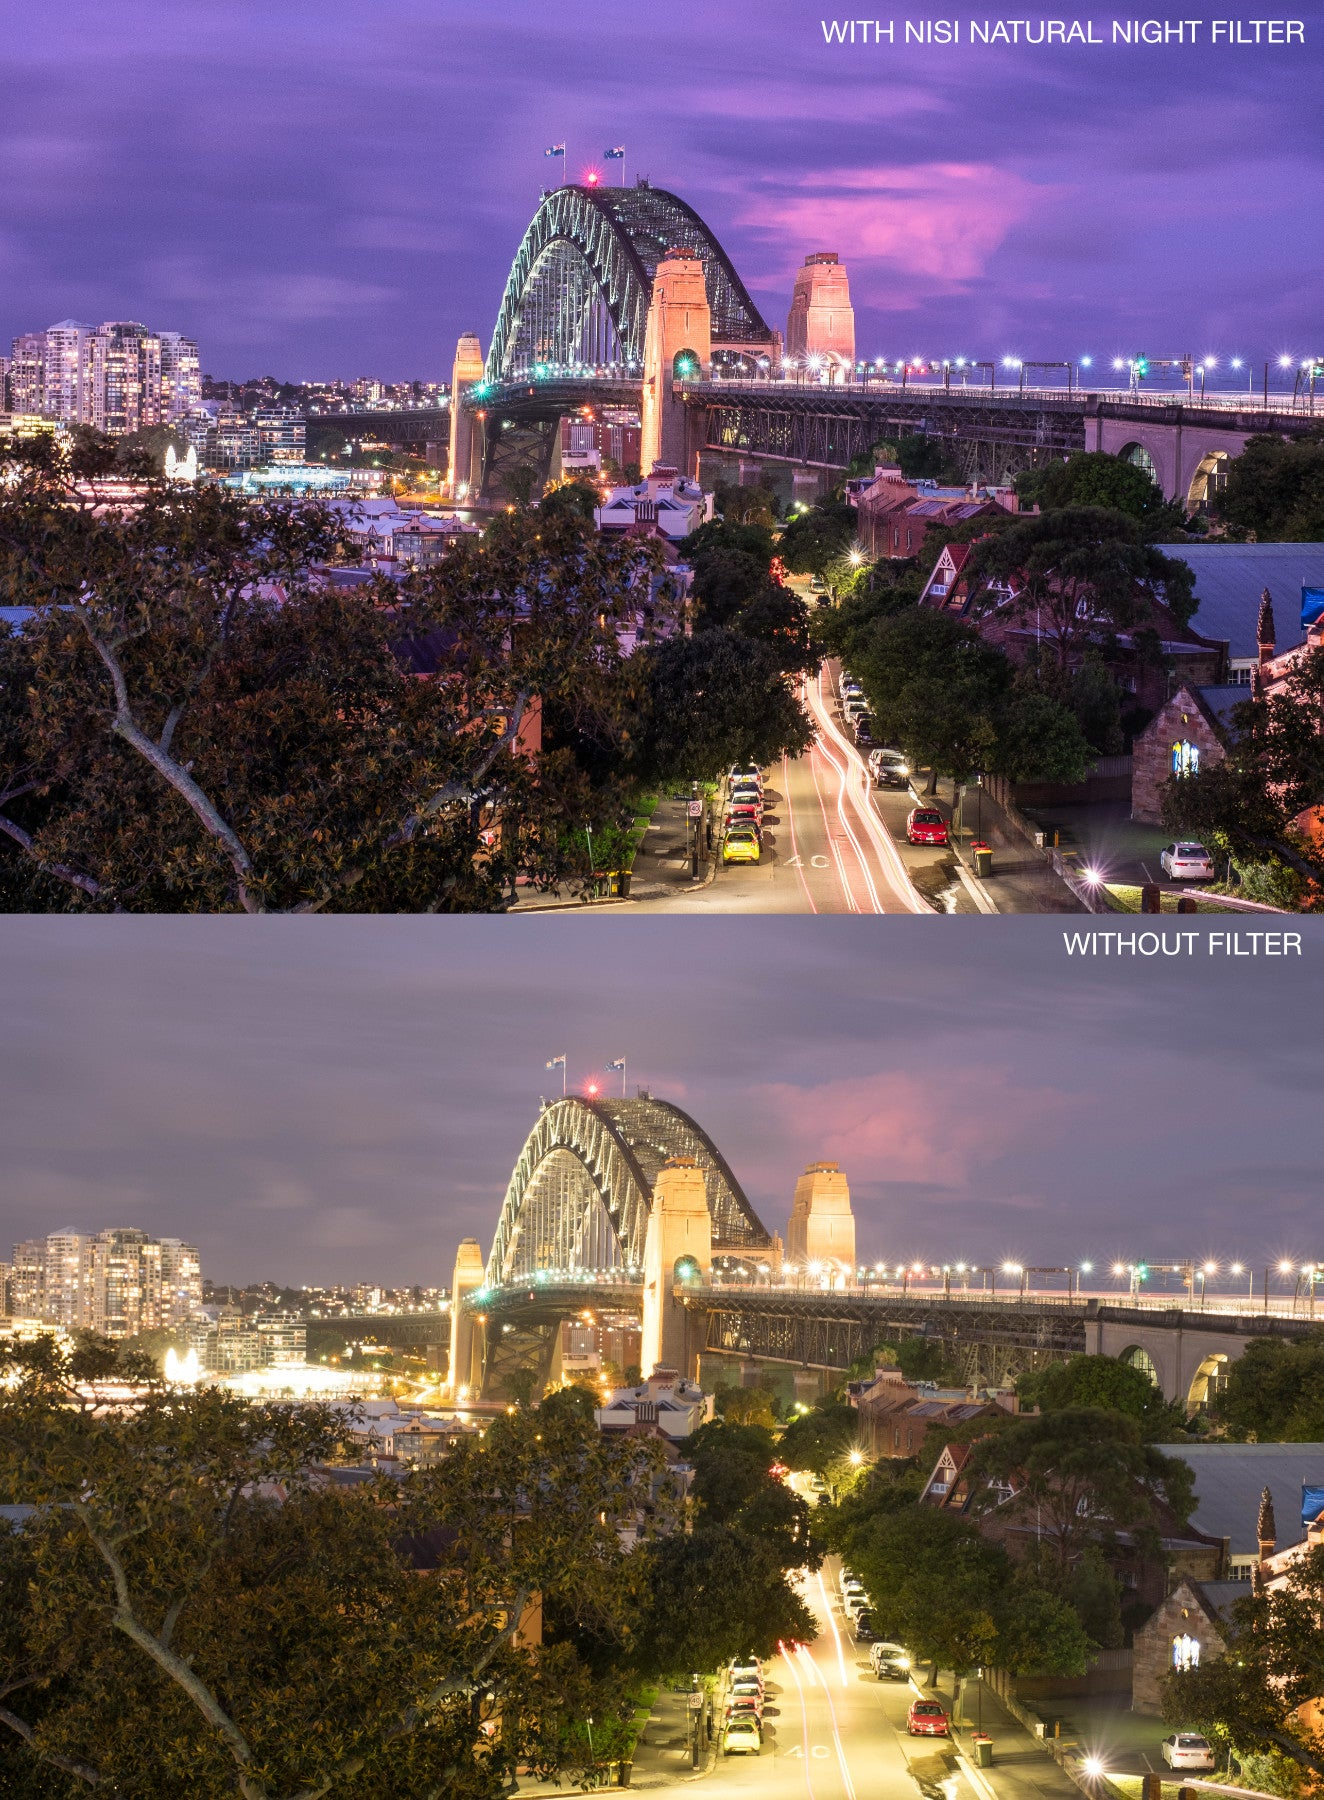 Night-Scene-Astro-Photography-Filter-For-Large-Lenses-With-Without-Filter-Photo-Nisi-Filters-150x150mm-Natural-Night-Filter-Nisi-Filters-Australia